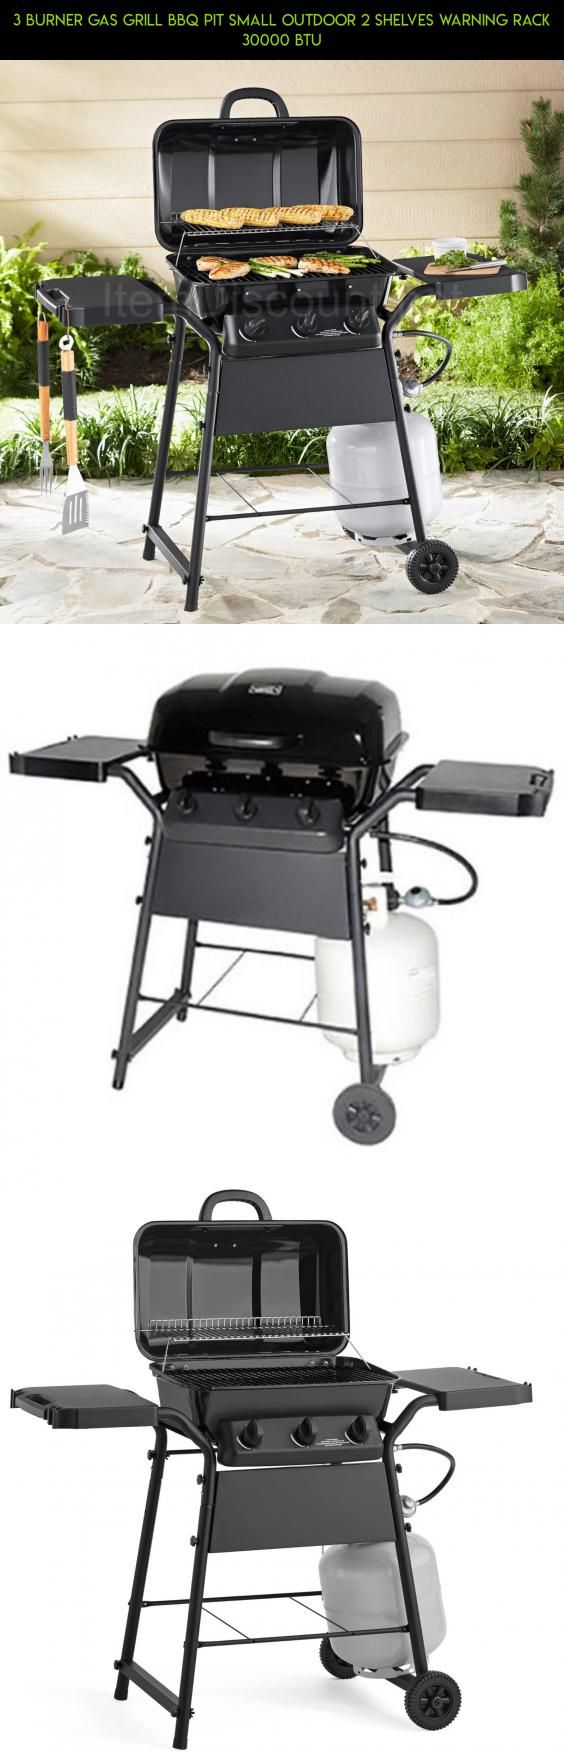 3 Burner Gas Grill BBQ Pit Small Outdoor 2 Shelves Warning Rack 30000 BTU #camera #grills #fpv #racing #gadgets #parts #products #plans #technology #shopping #kit #drone #tech #racks